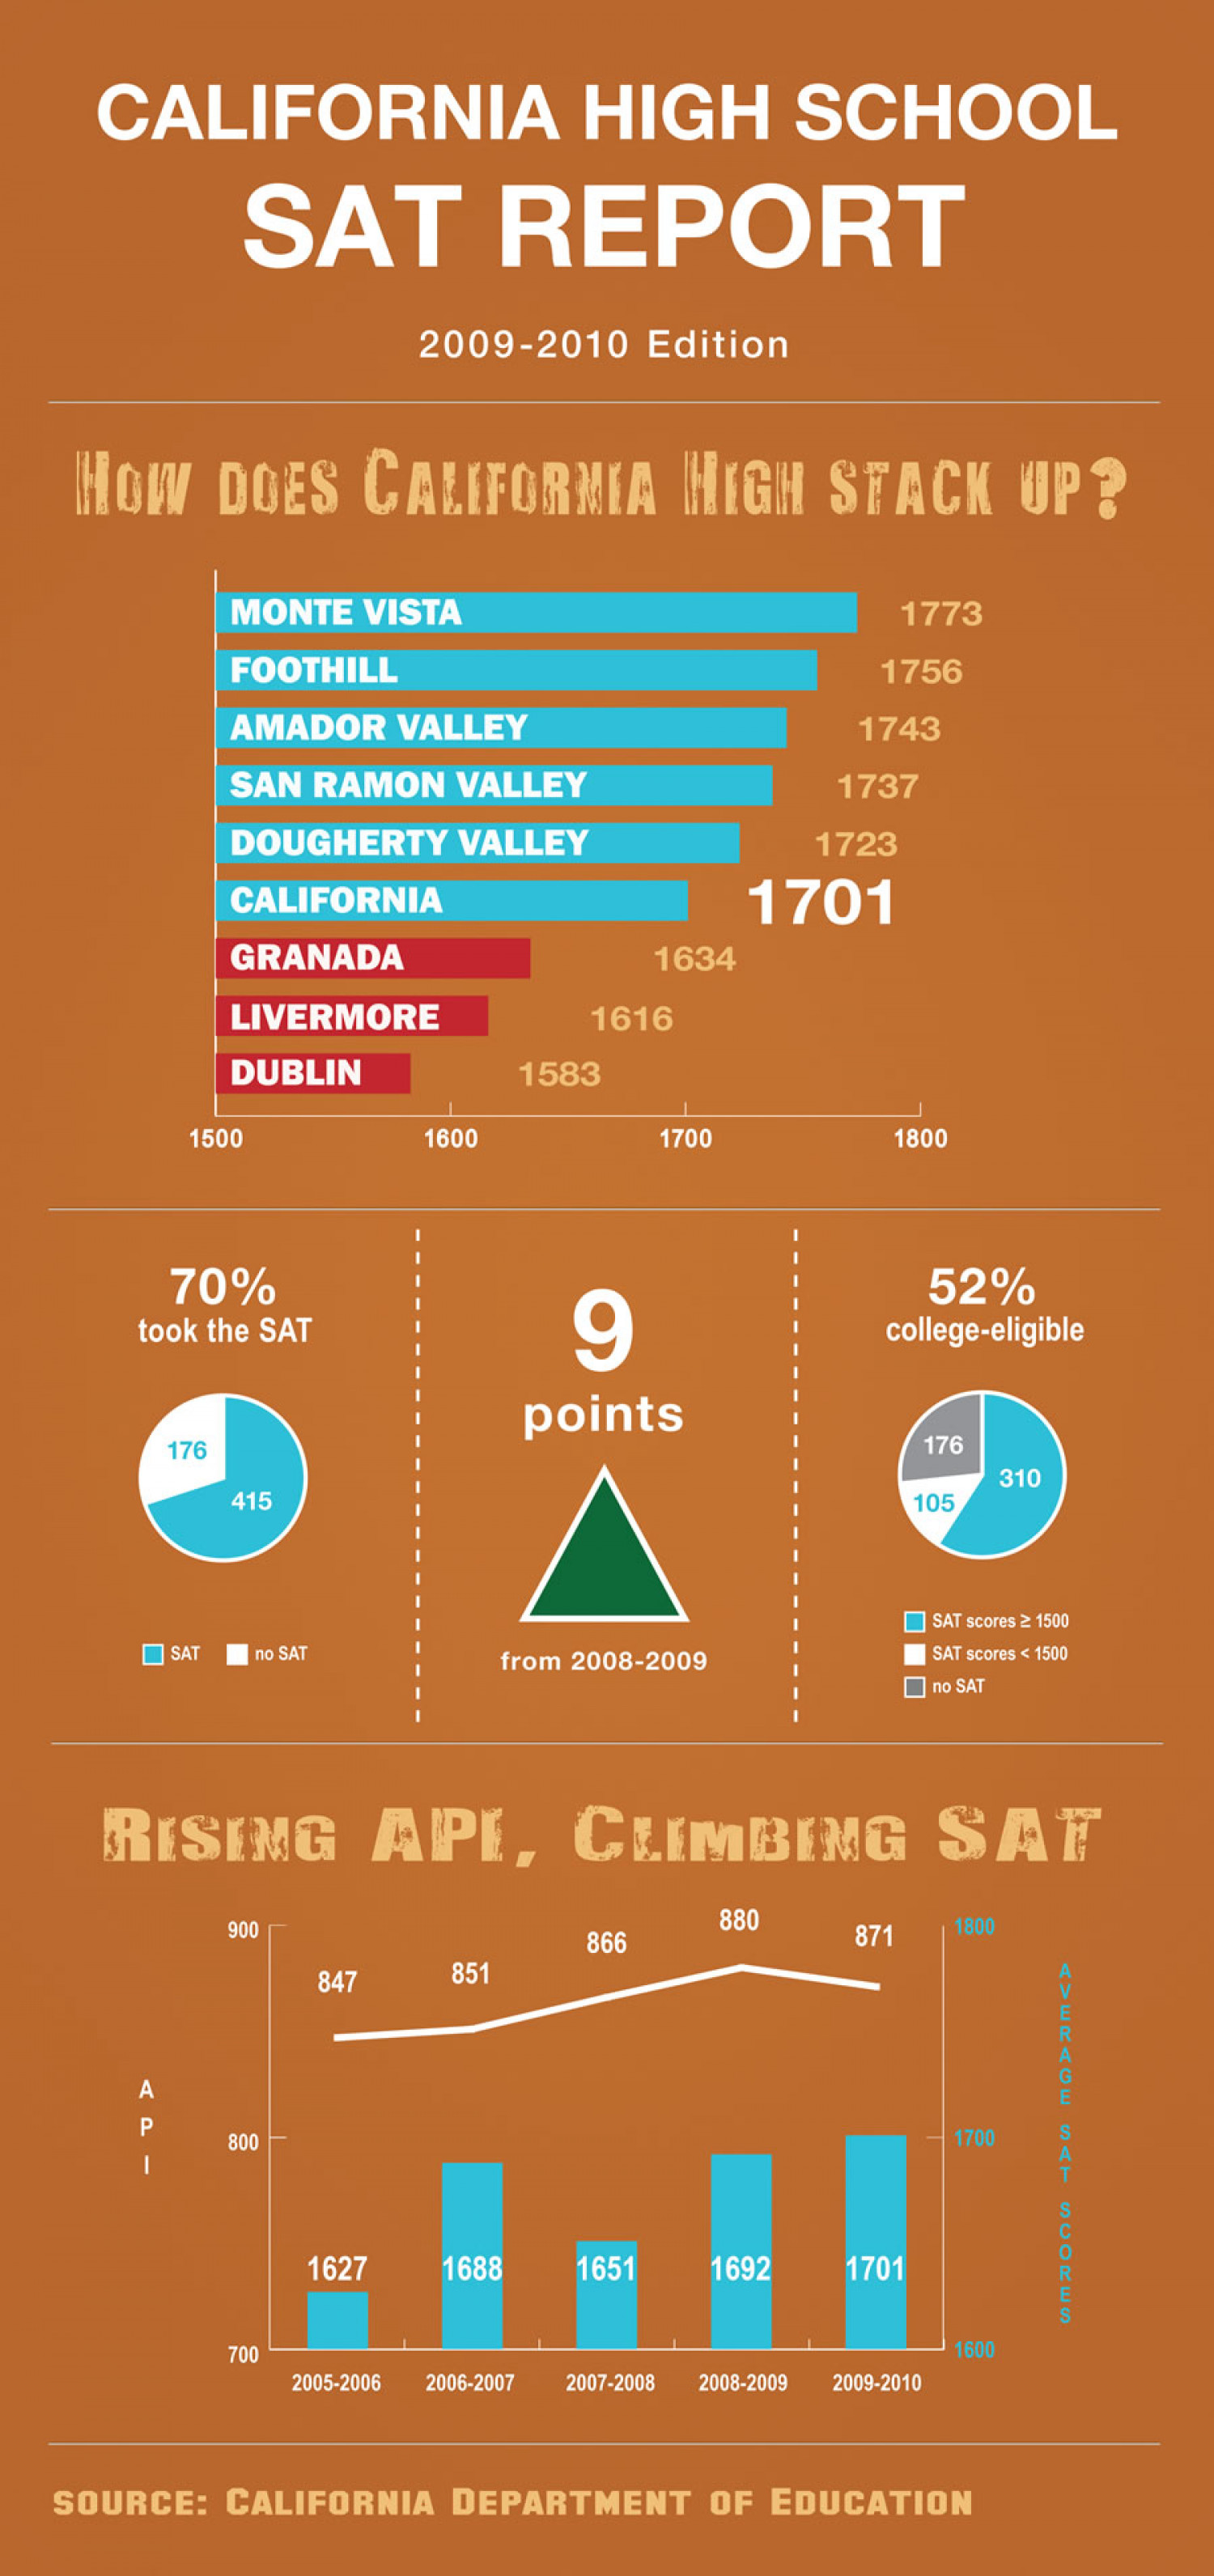 California High School SAT Report Infographic